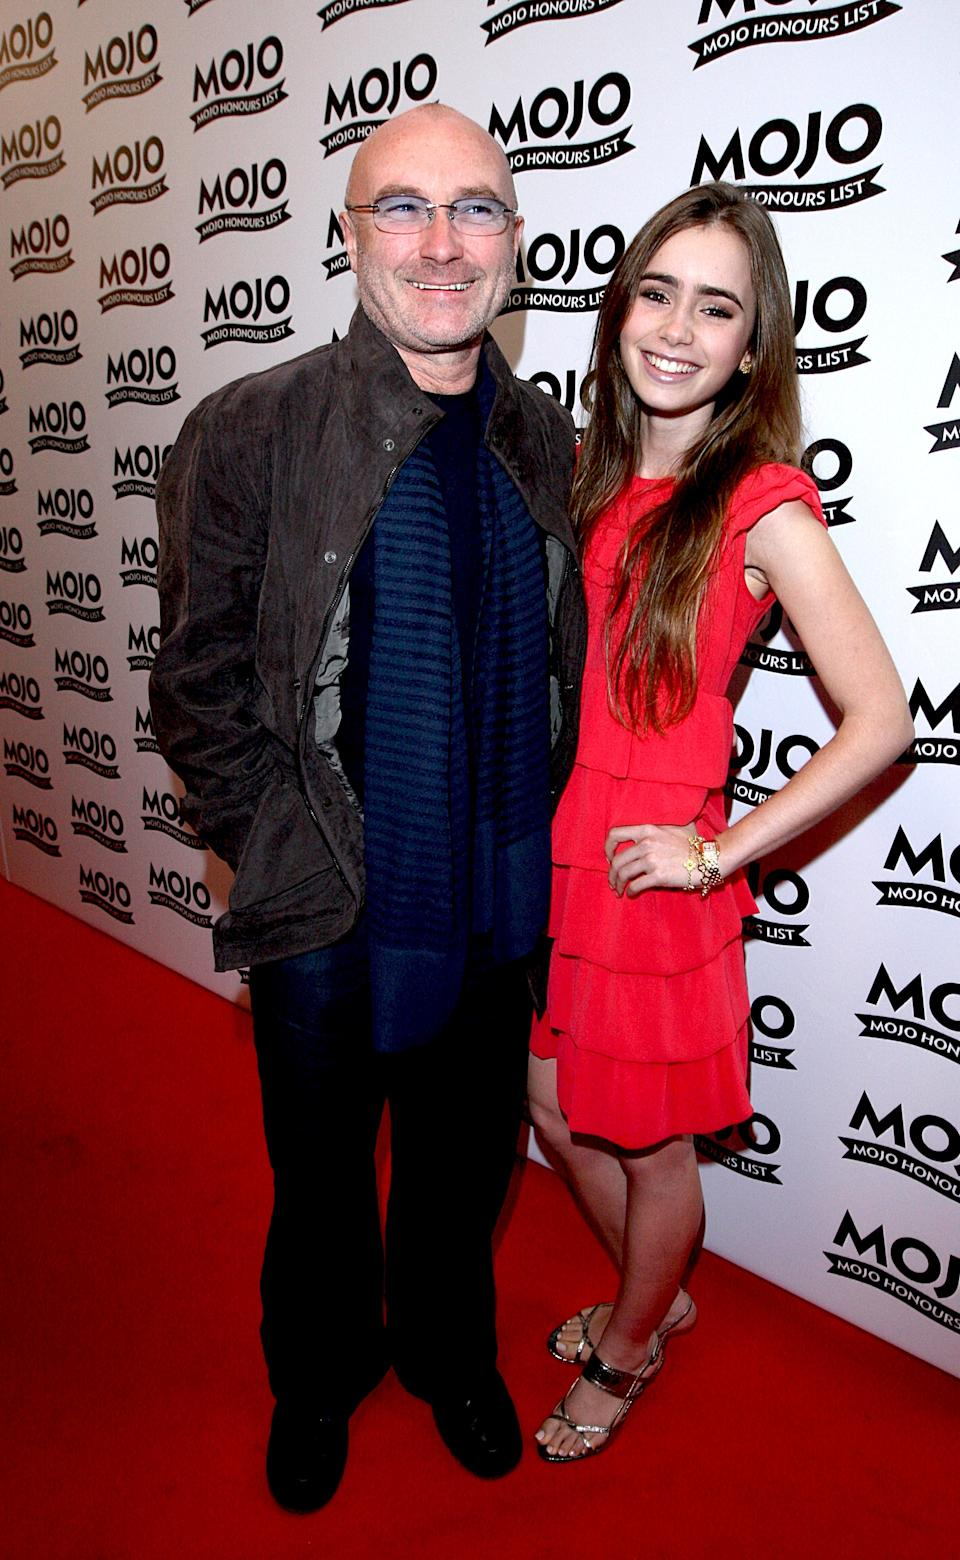 Phil Collins and daughter Lily arrive for the Mojo Honours List award ceremony at The Brewery, east London.